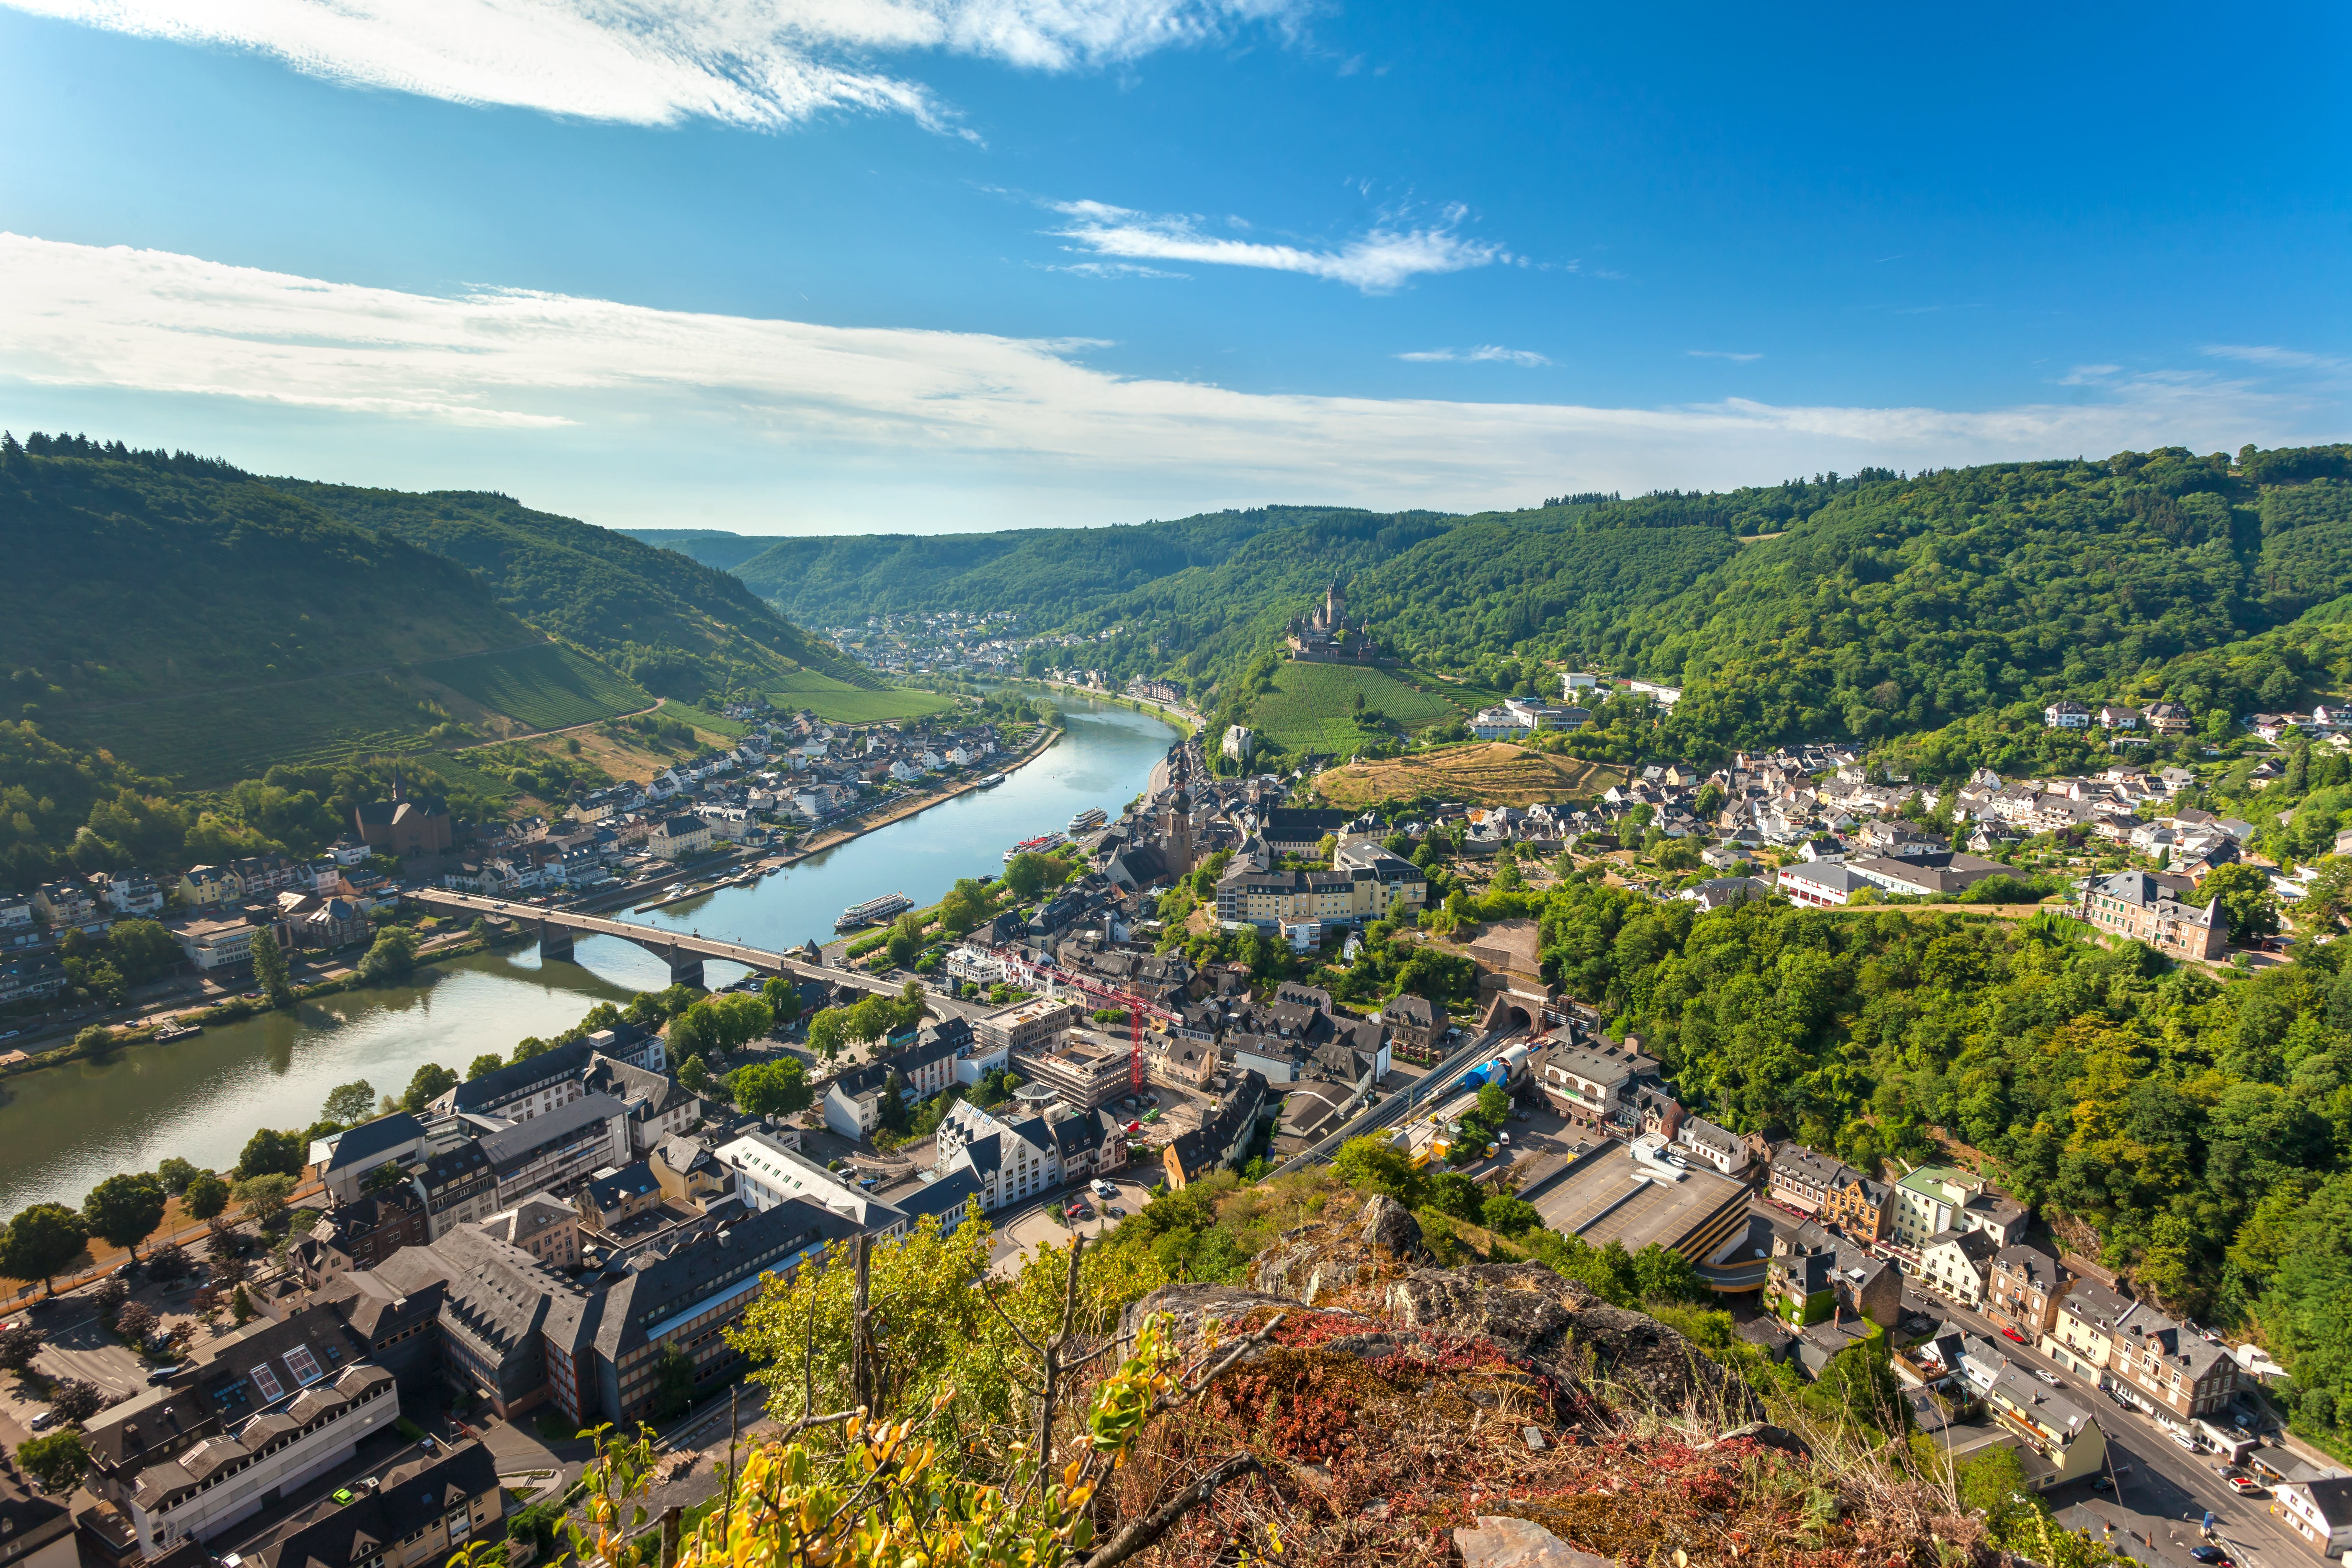 Moselle River flowing through France